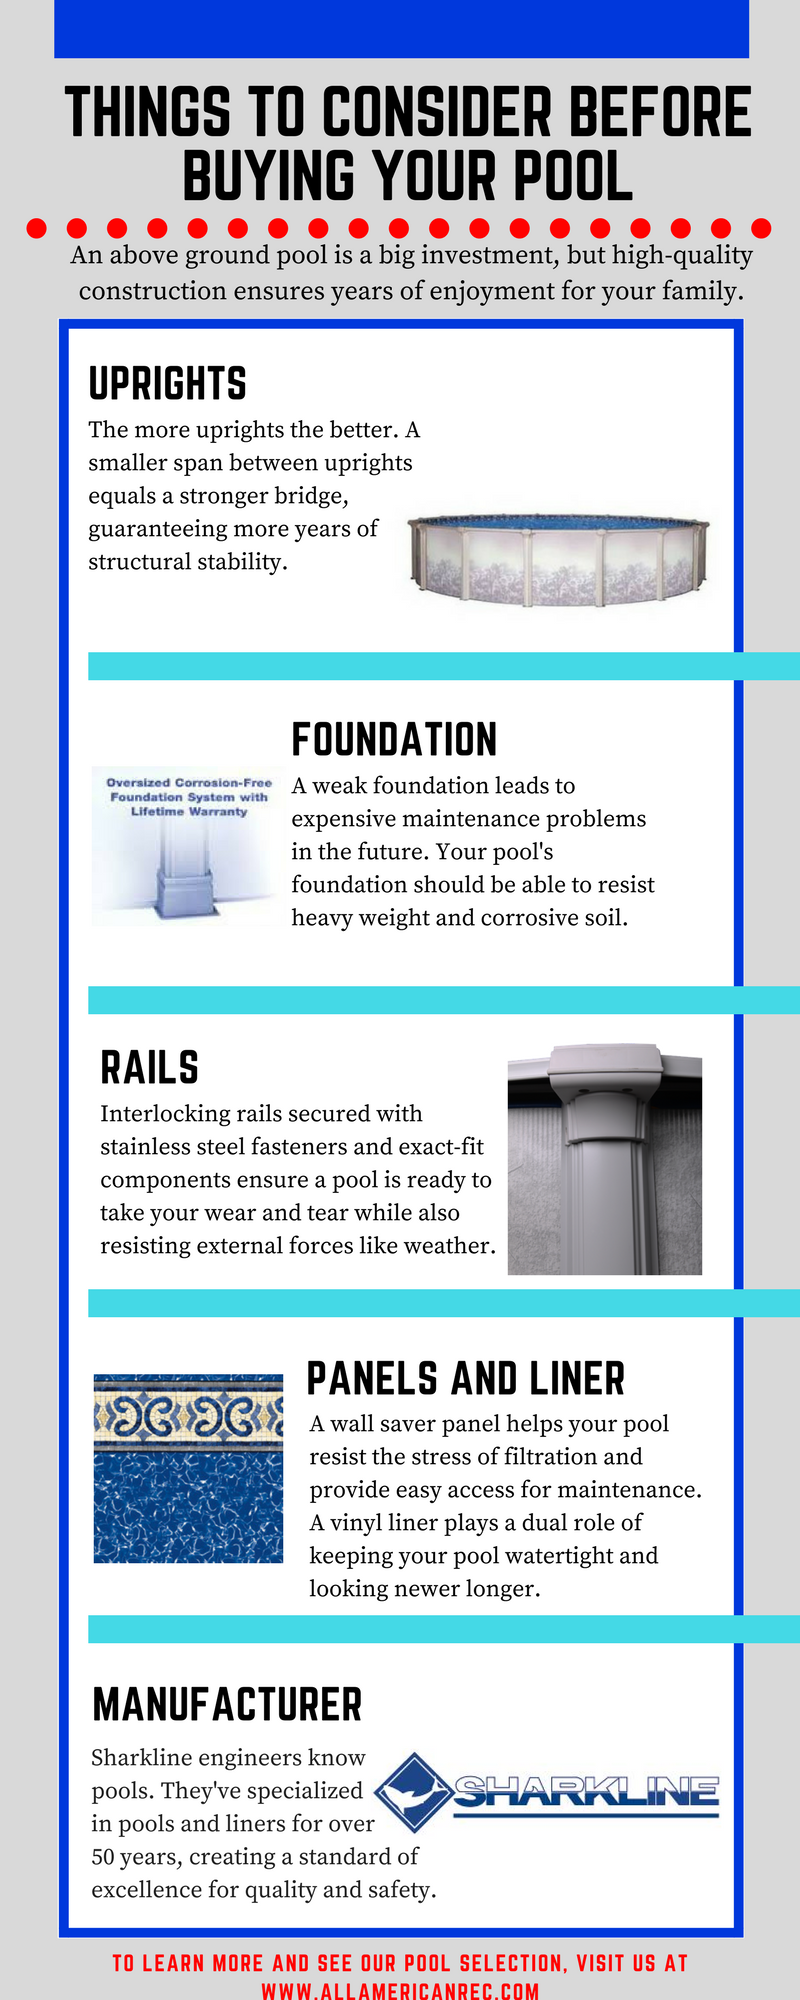 Things to Consider Before Buying Your Above Ground Pool infographic